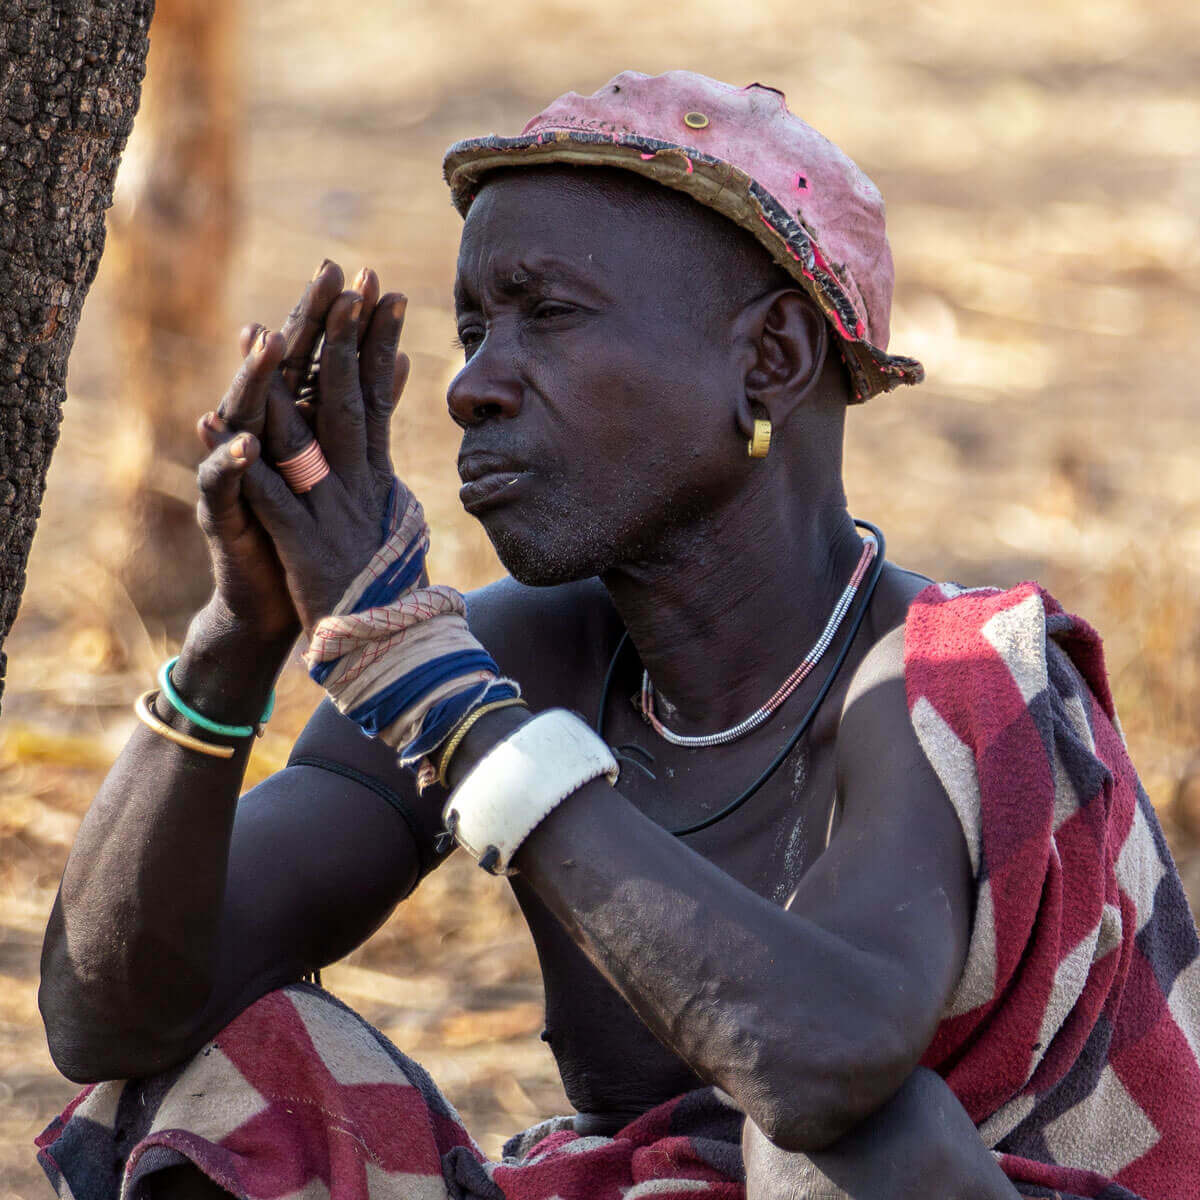 Ehiopia_Mursi_man_tribe_Surma_Suri_village_Jinka_Africa_traveling_tours_country_visiting_adventuresinethiopia